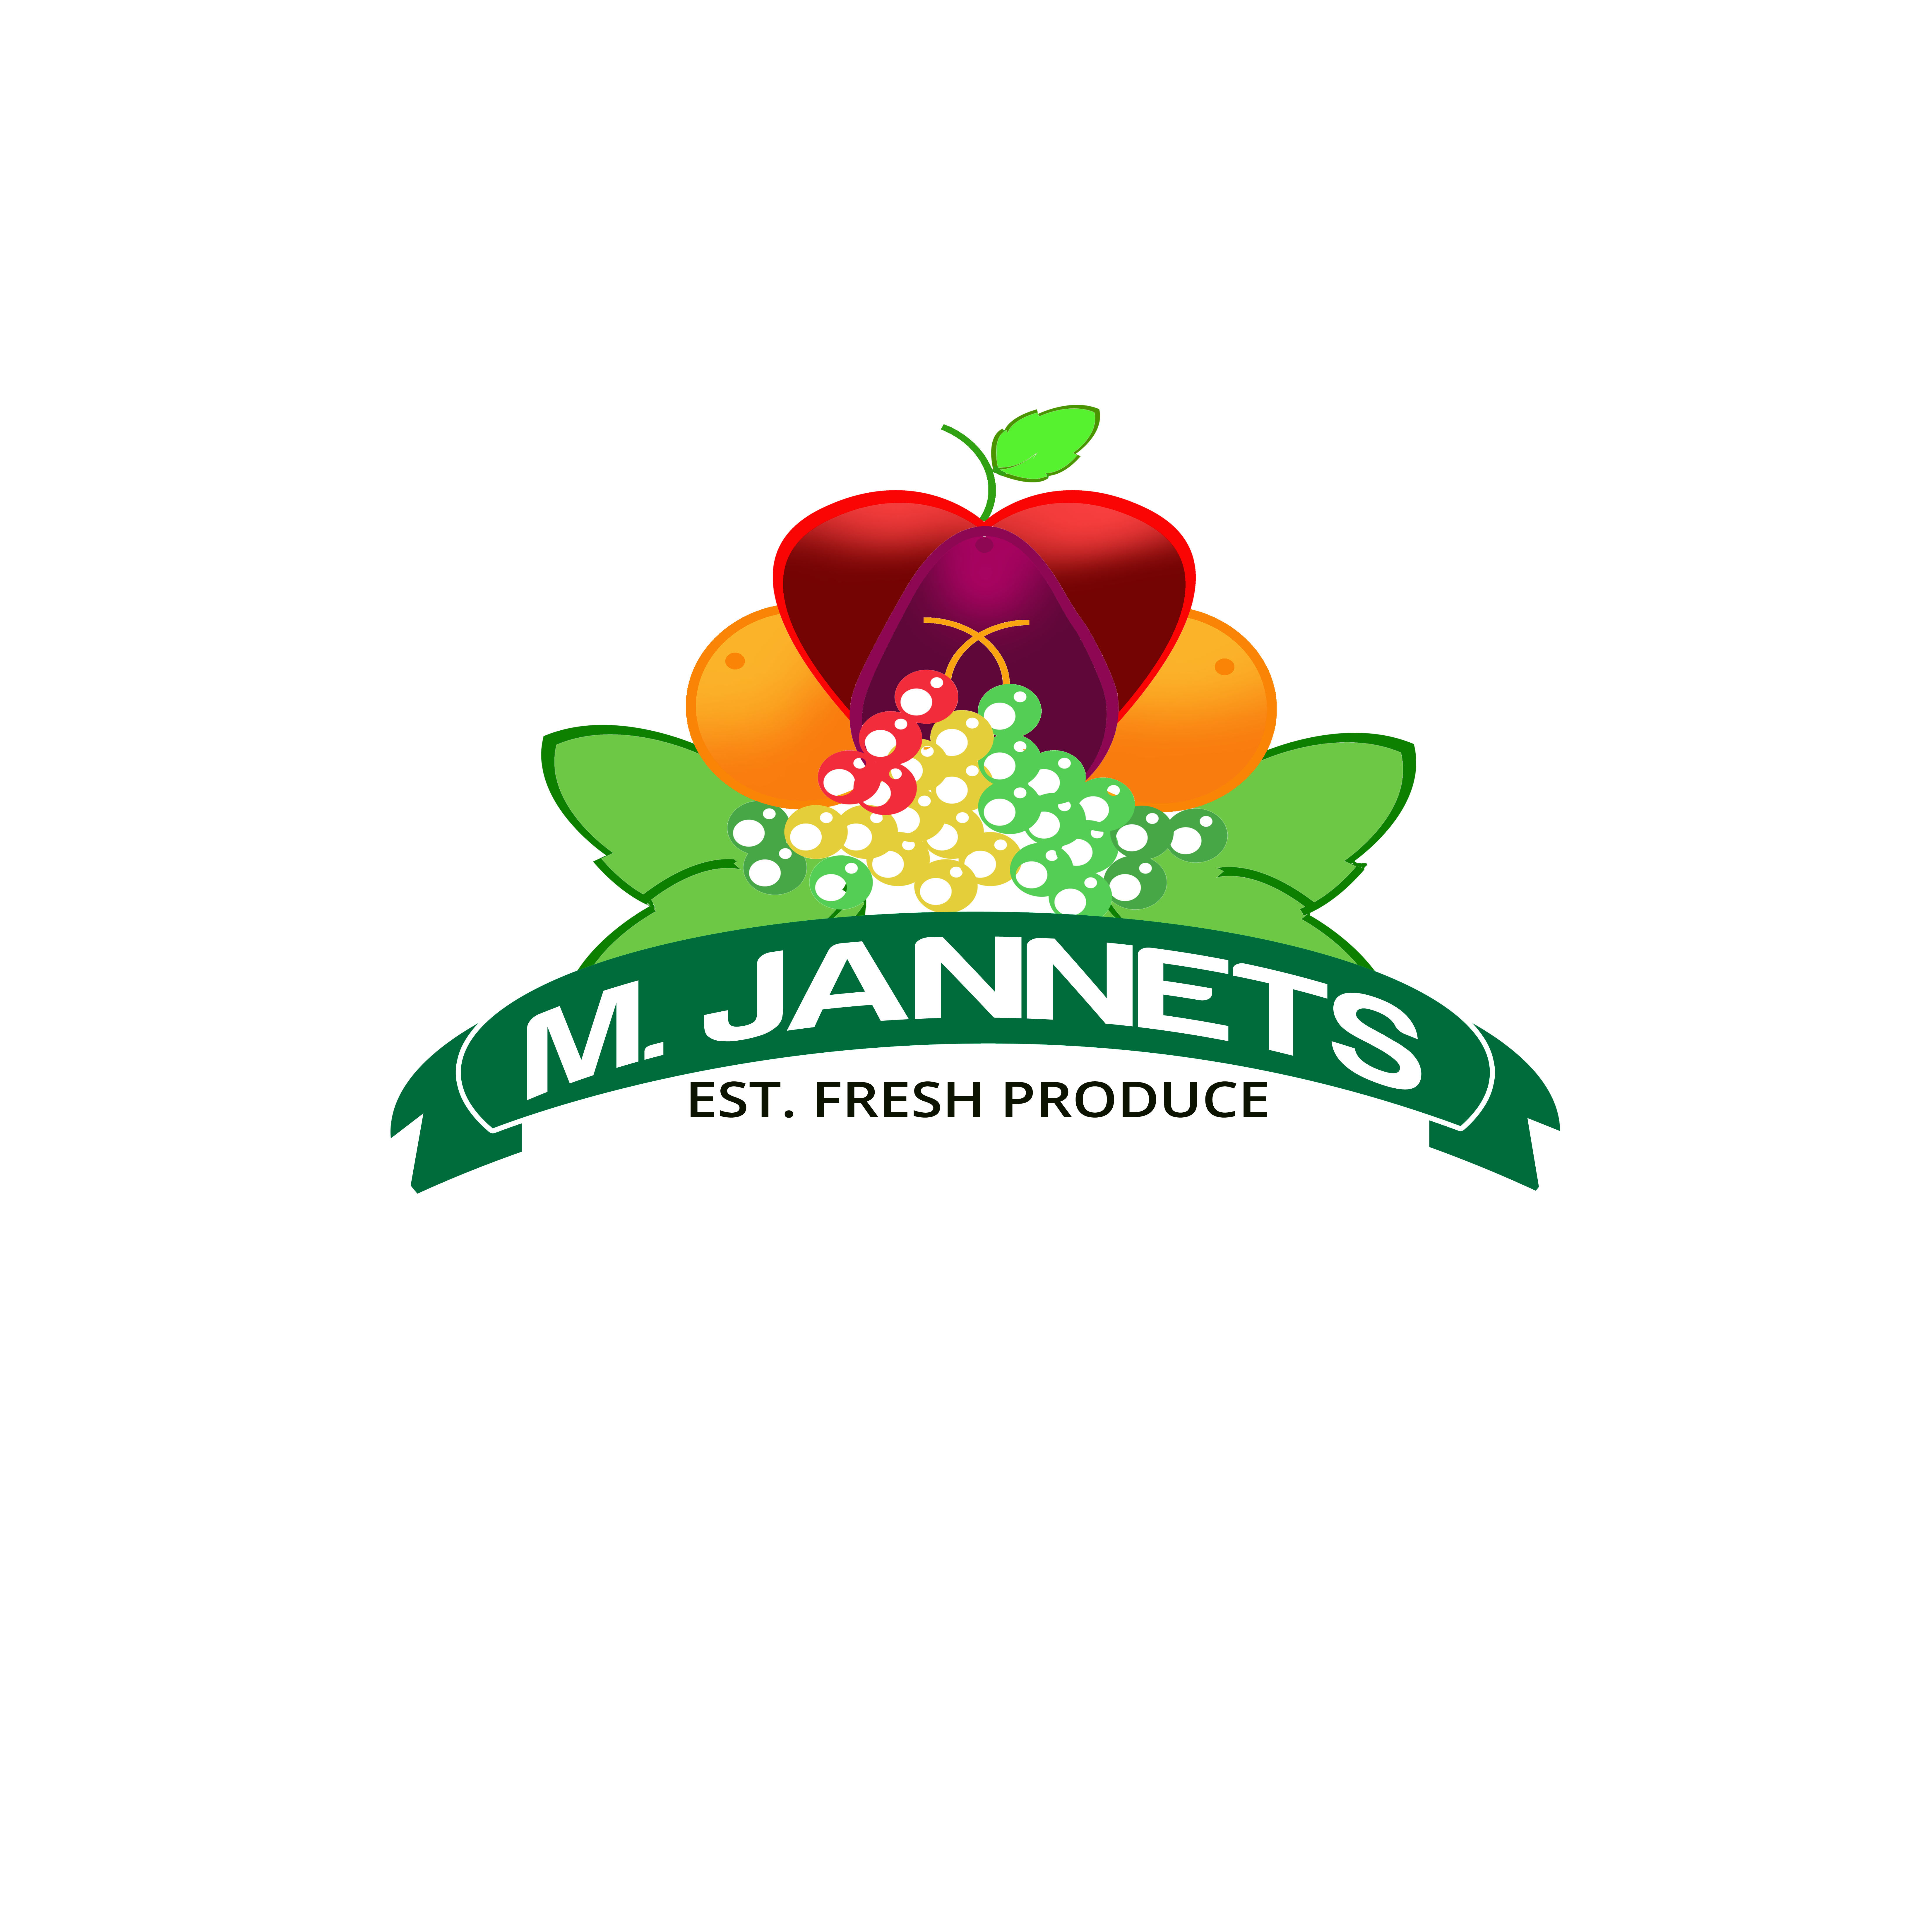 Logo Design by Allan Esclamado - Entry No. 20 in the Logo Design Contest Inspiring Logo Design for M. Jannets.